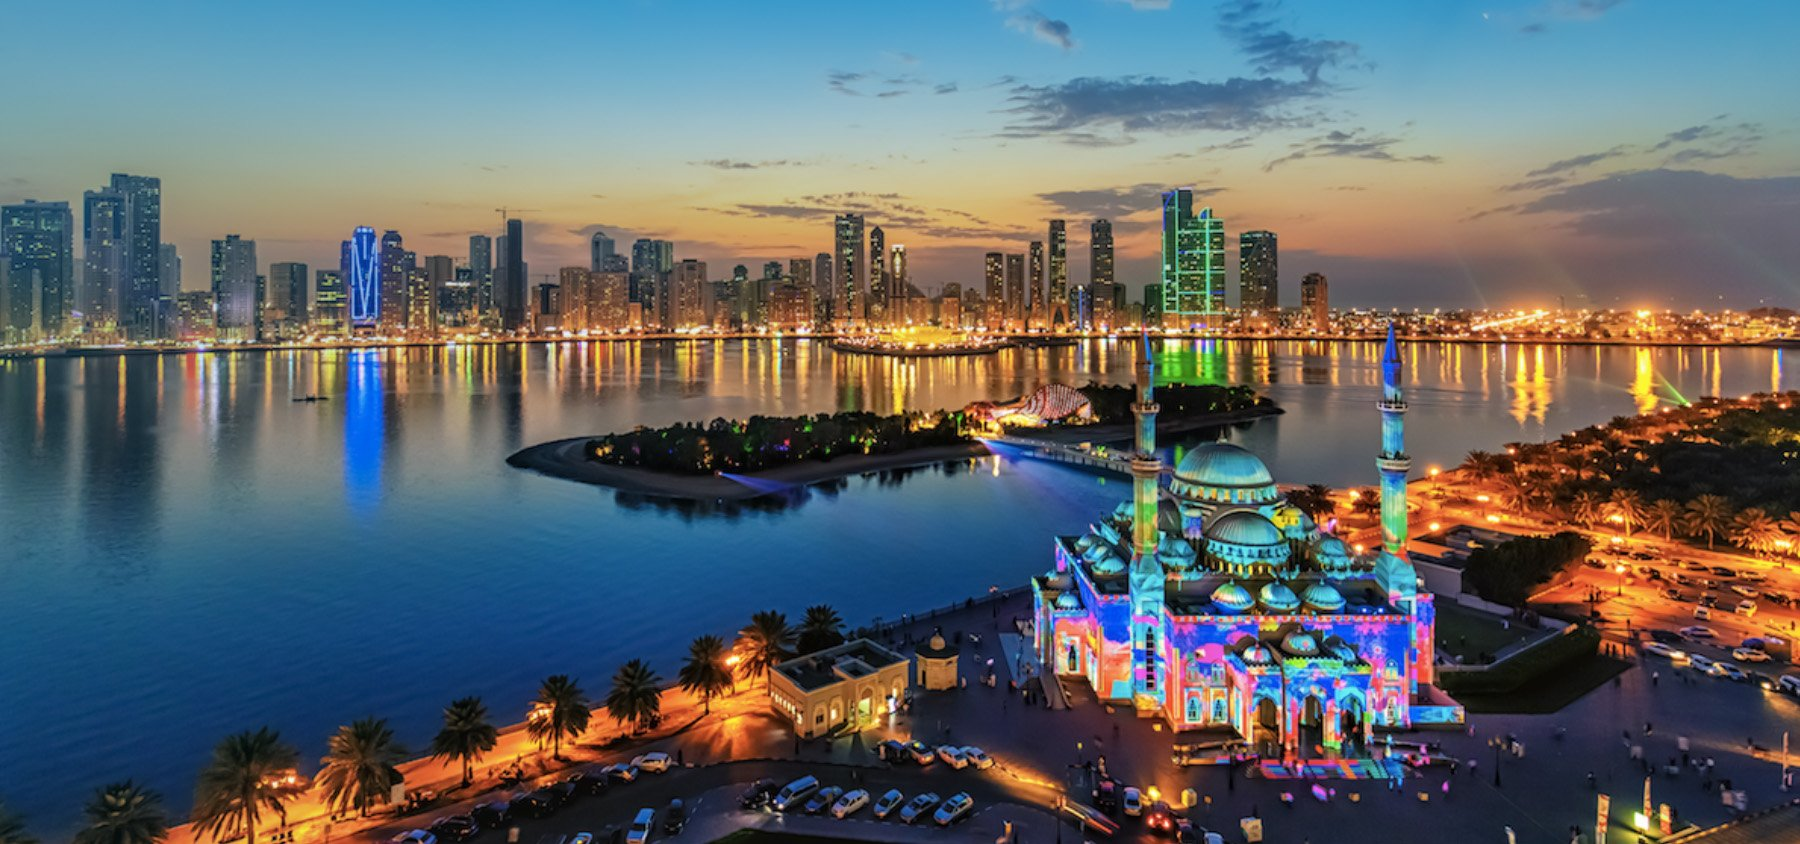 Discover the best sights in Sharjah